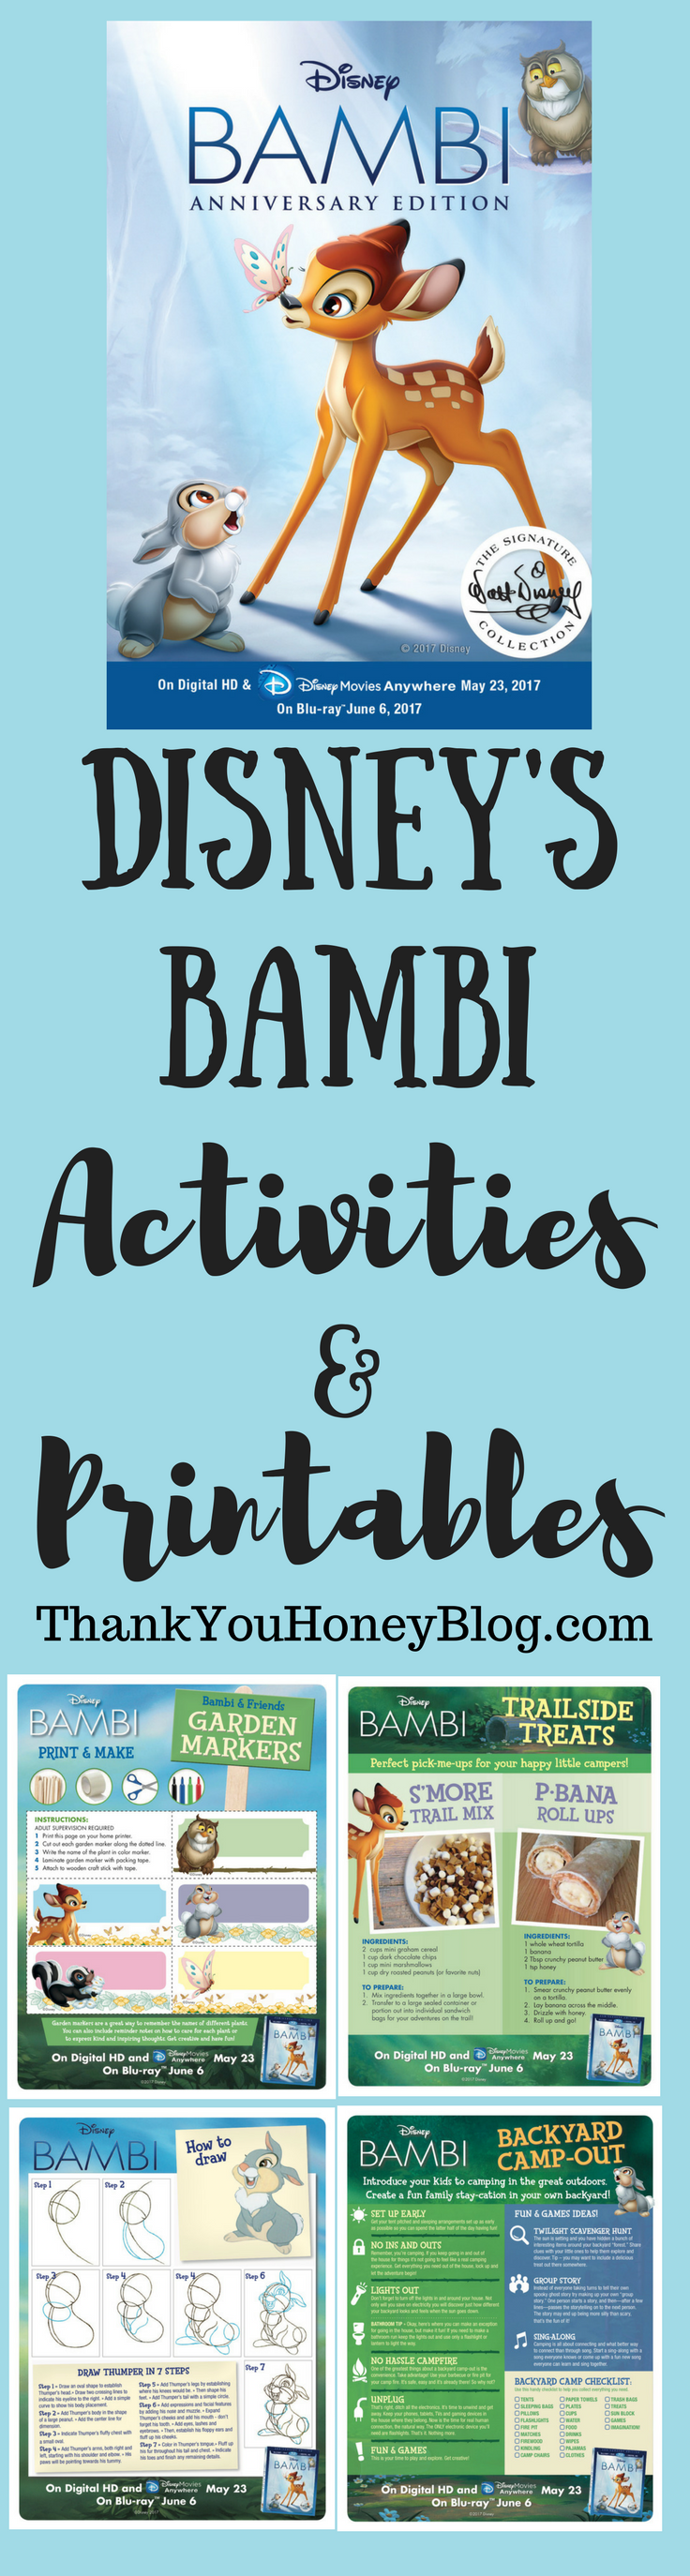 BAMBI Activities & Printables